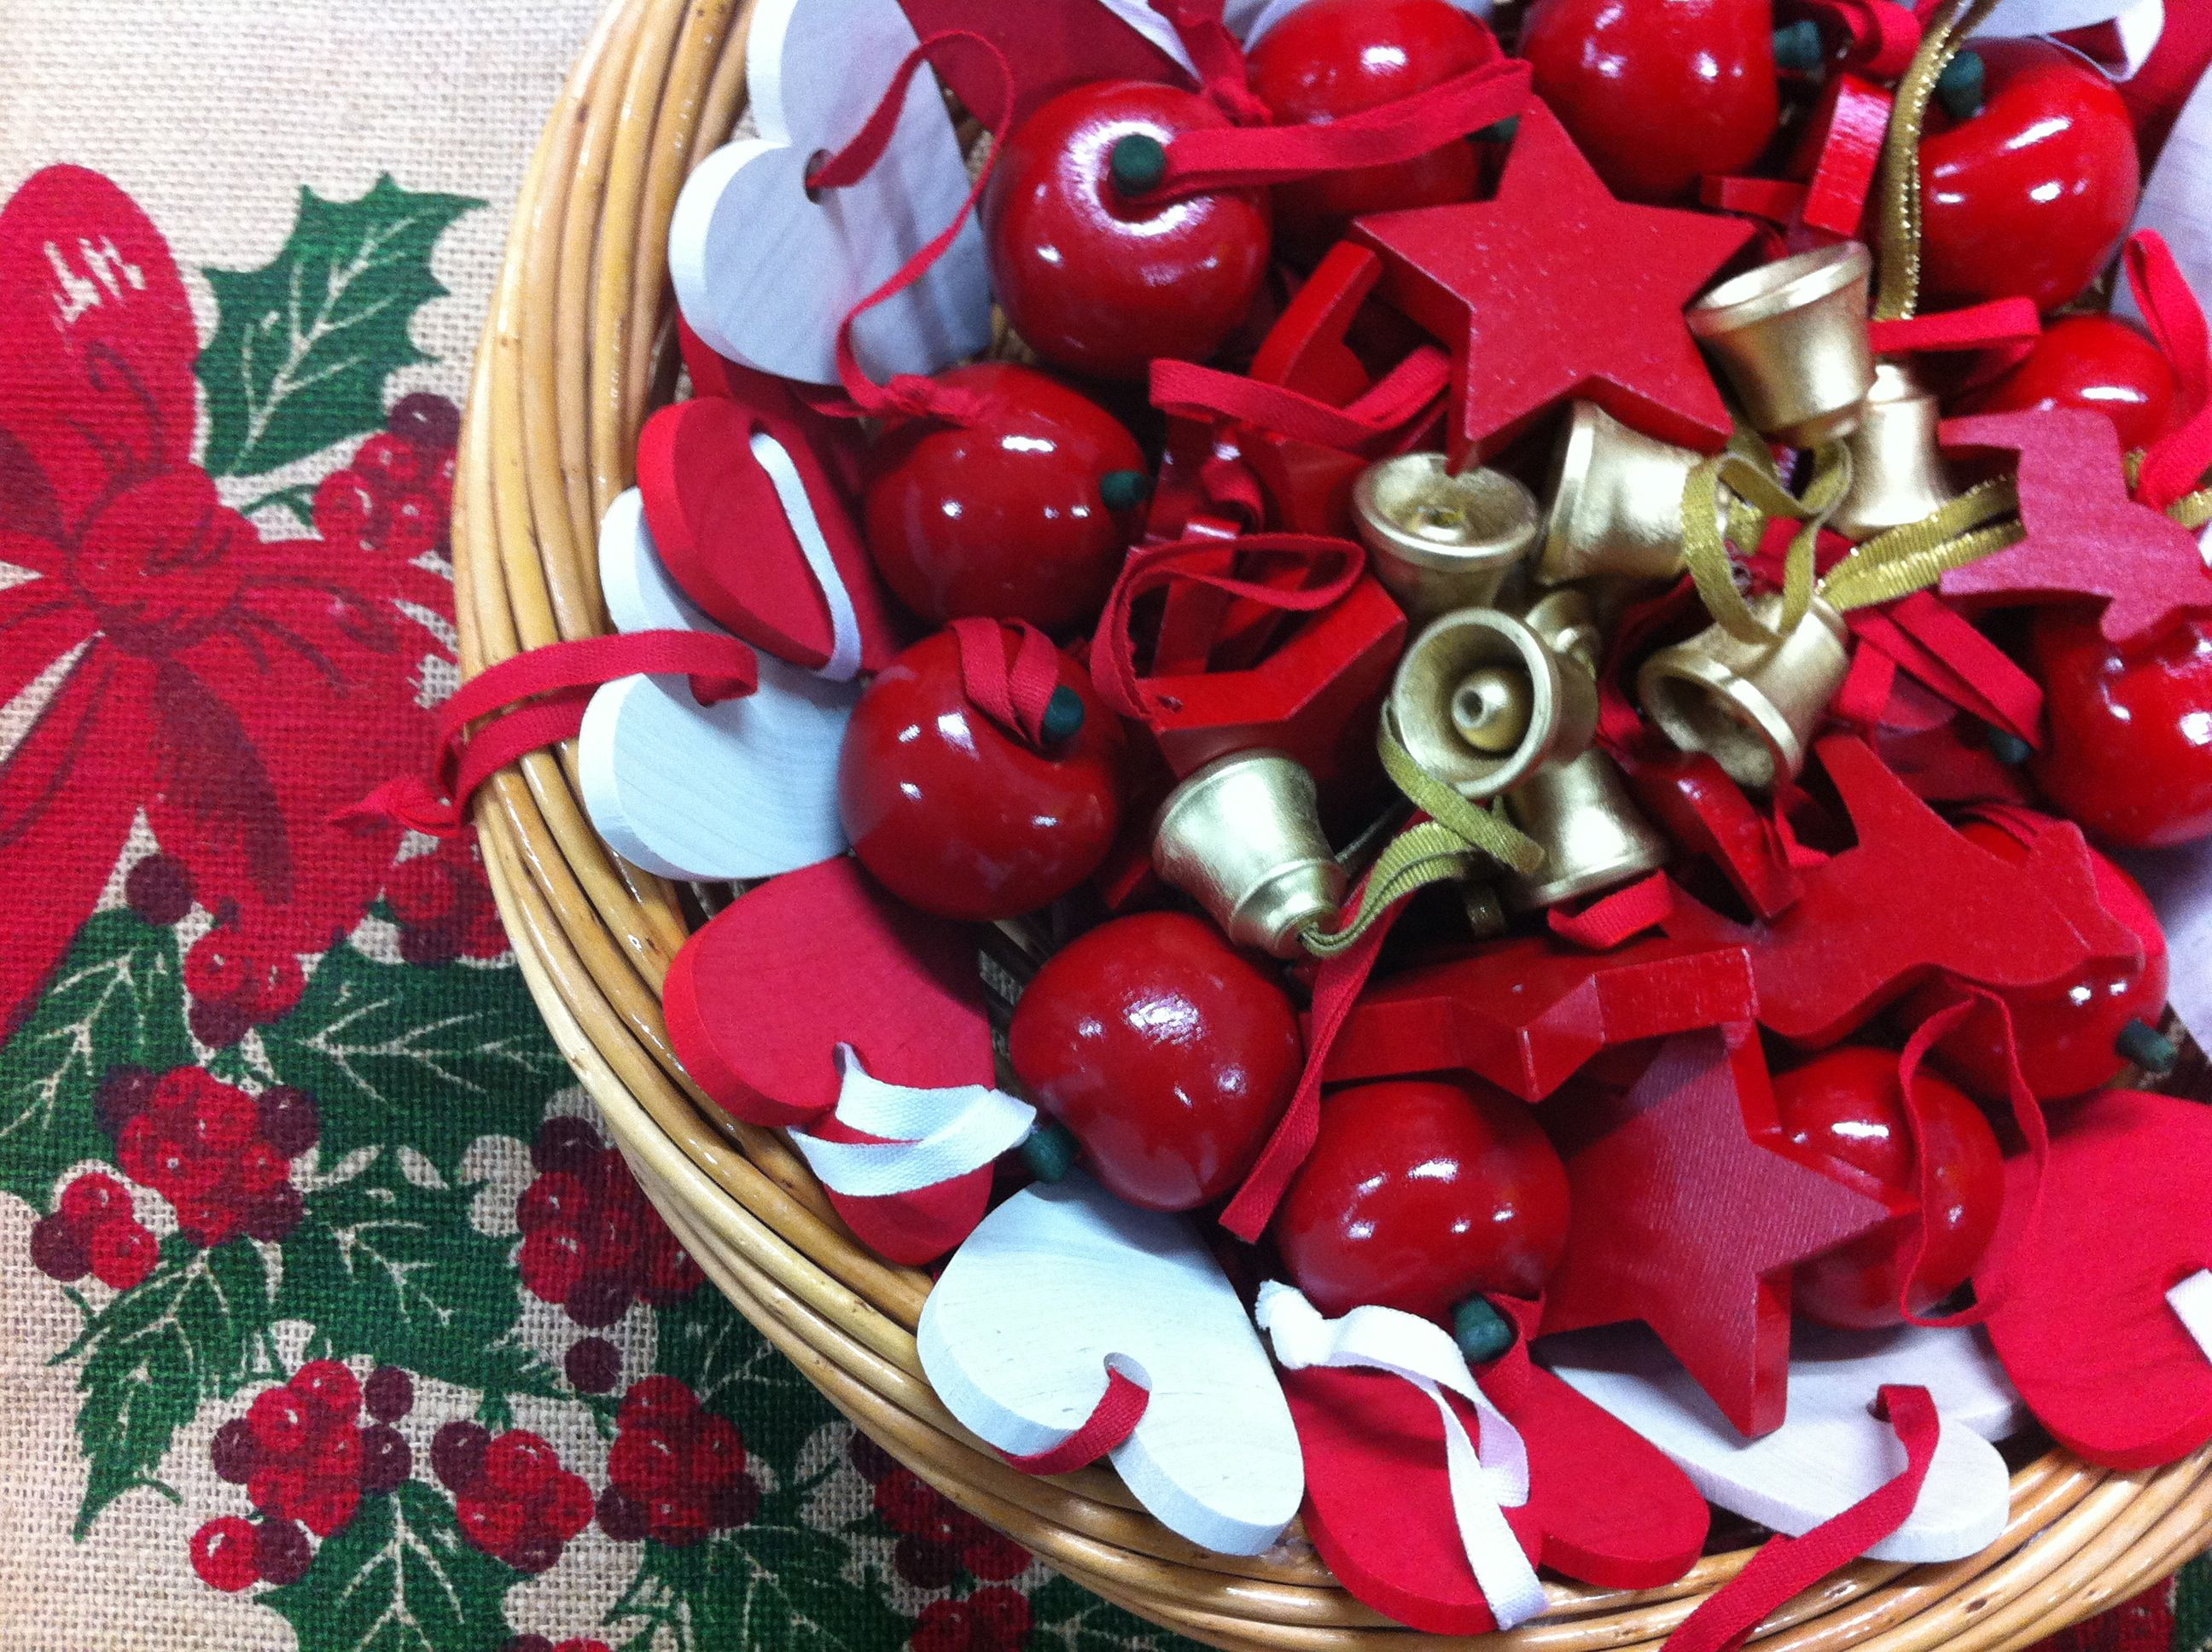 Traditional Swedish Christmas decorations Sold in our shops